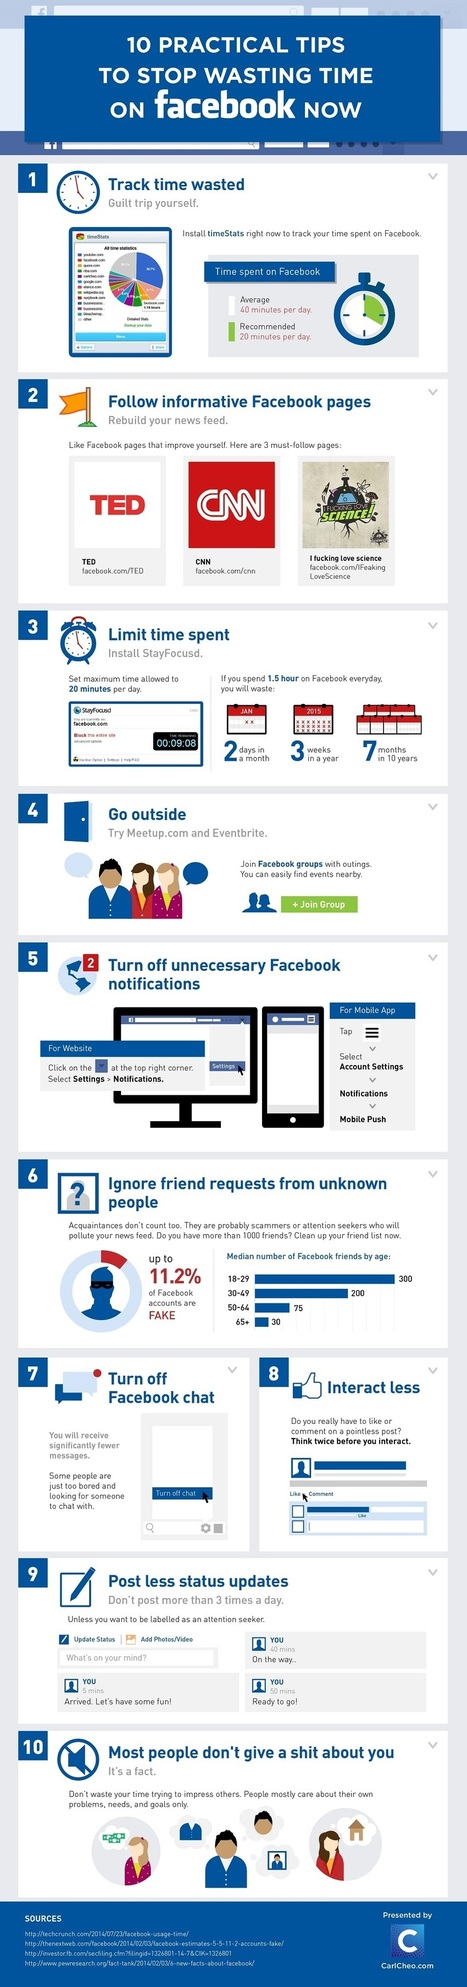 10 Tips To Stop Wasting Time on Facebook | Internet Psychology | Scoop.it